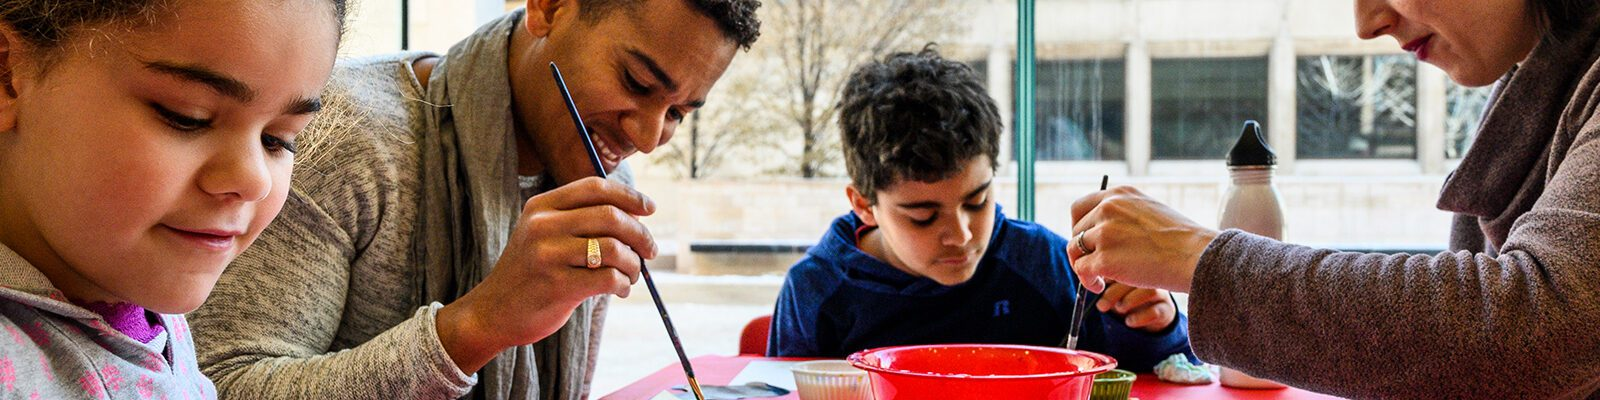 Family painting together at the Chazen Museum